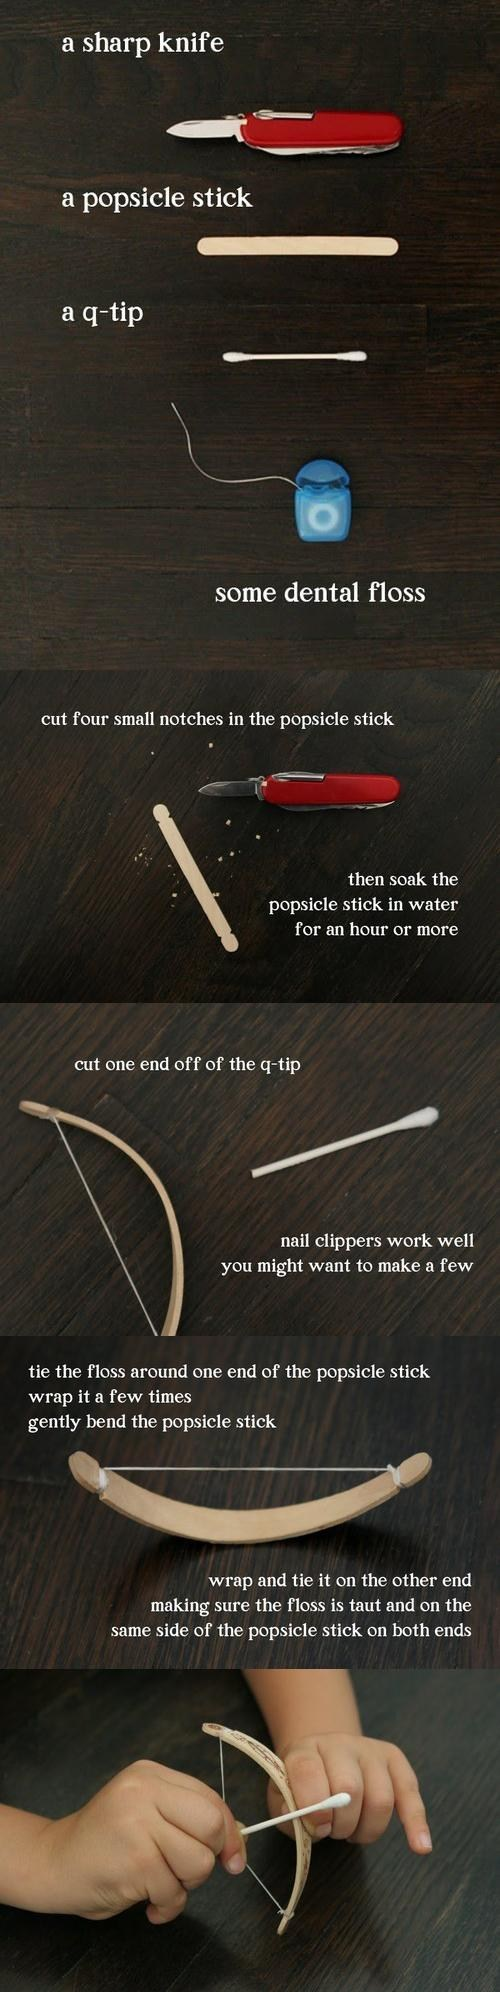 How to Make a Mini Bow & Arrow